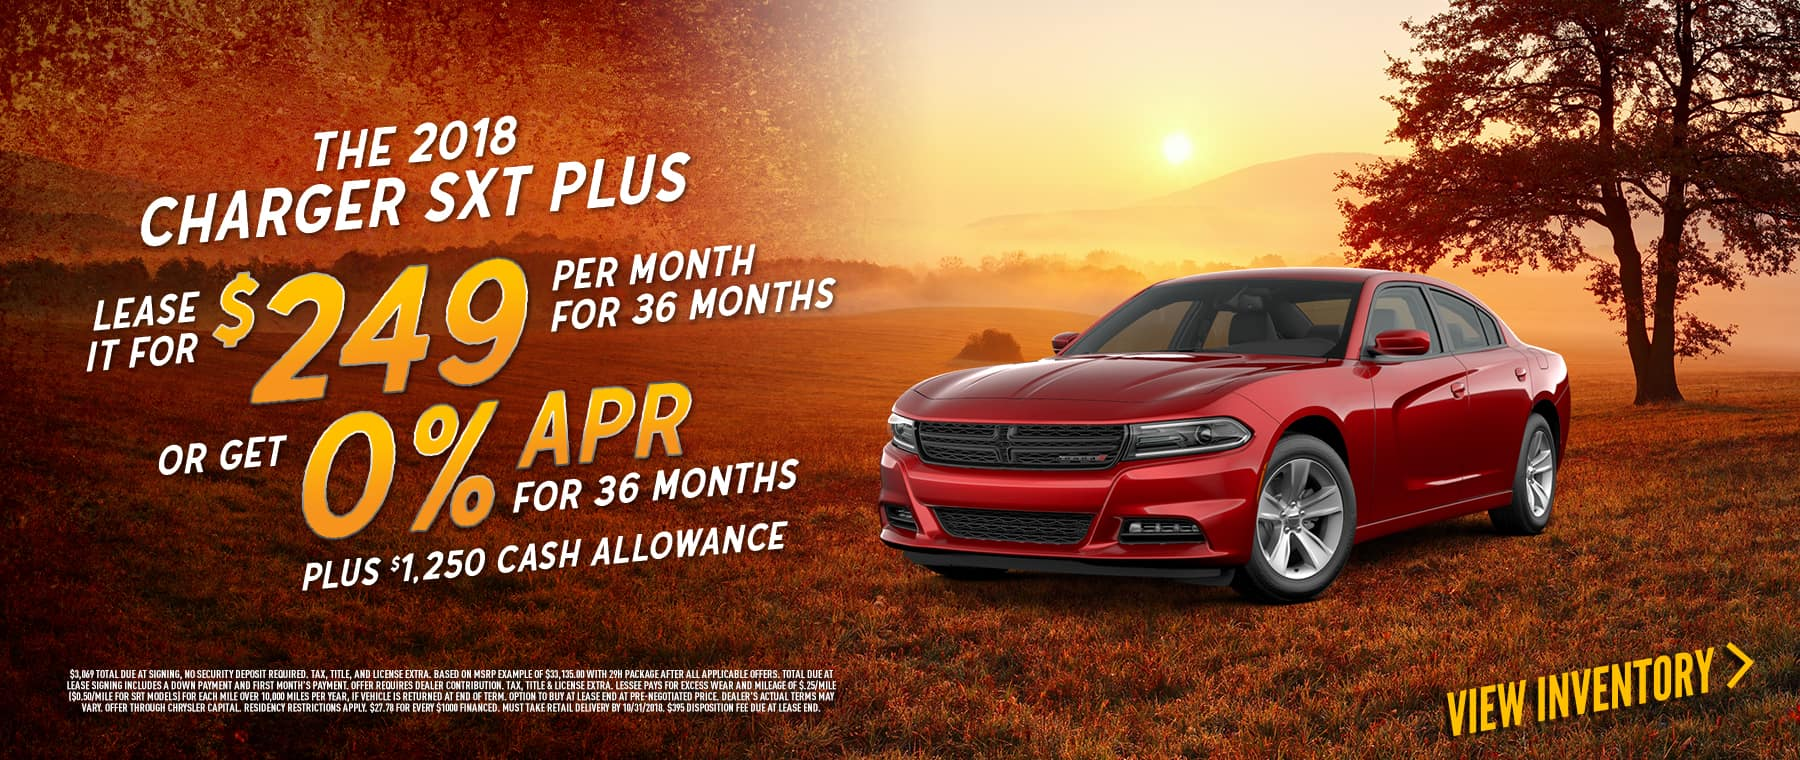 lease-2018-charger-sxt-plus-for-249-per-month